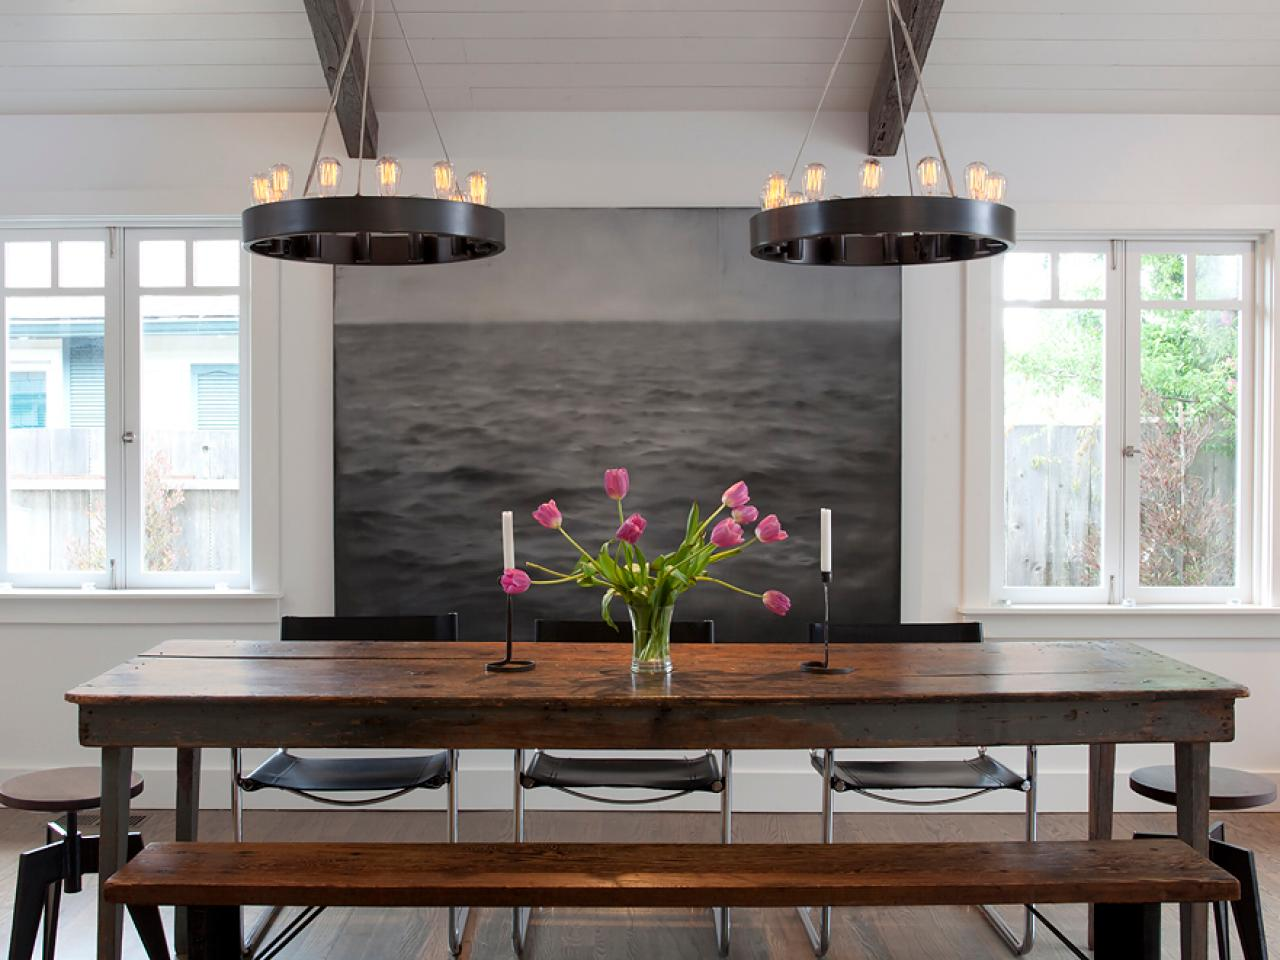 chandeliers-are-dining-room-statement-makers-modern-table-decorating-ideas-rustic-with-wooden-decoration-home-centerpieces-everyday-formal-design-interior-house-hall-kitchen-and.jpg